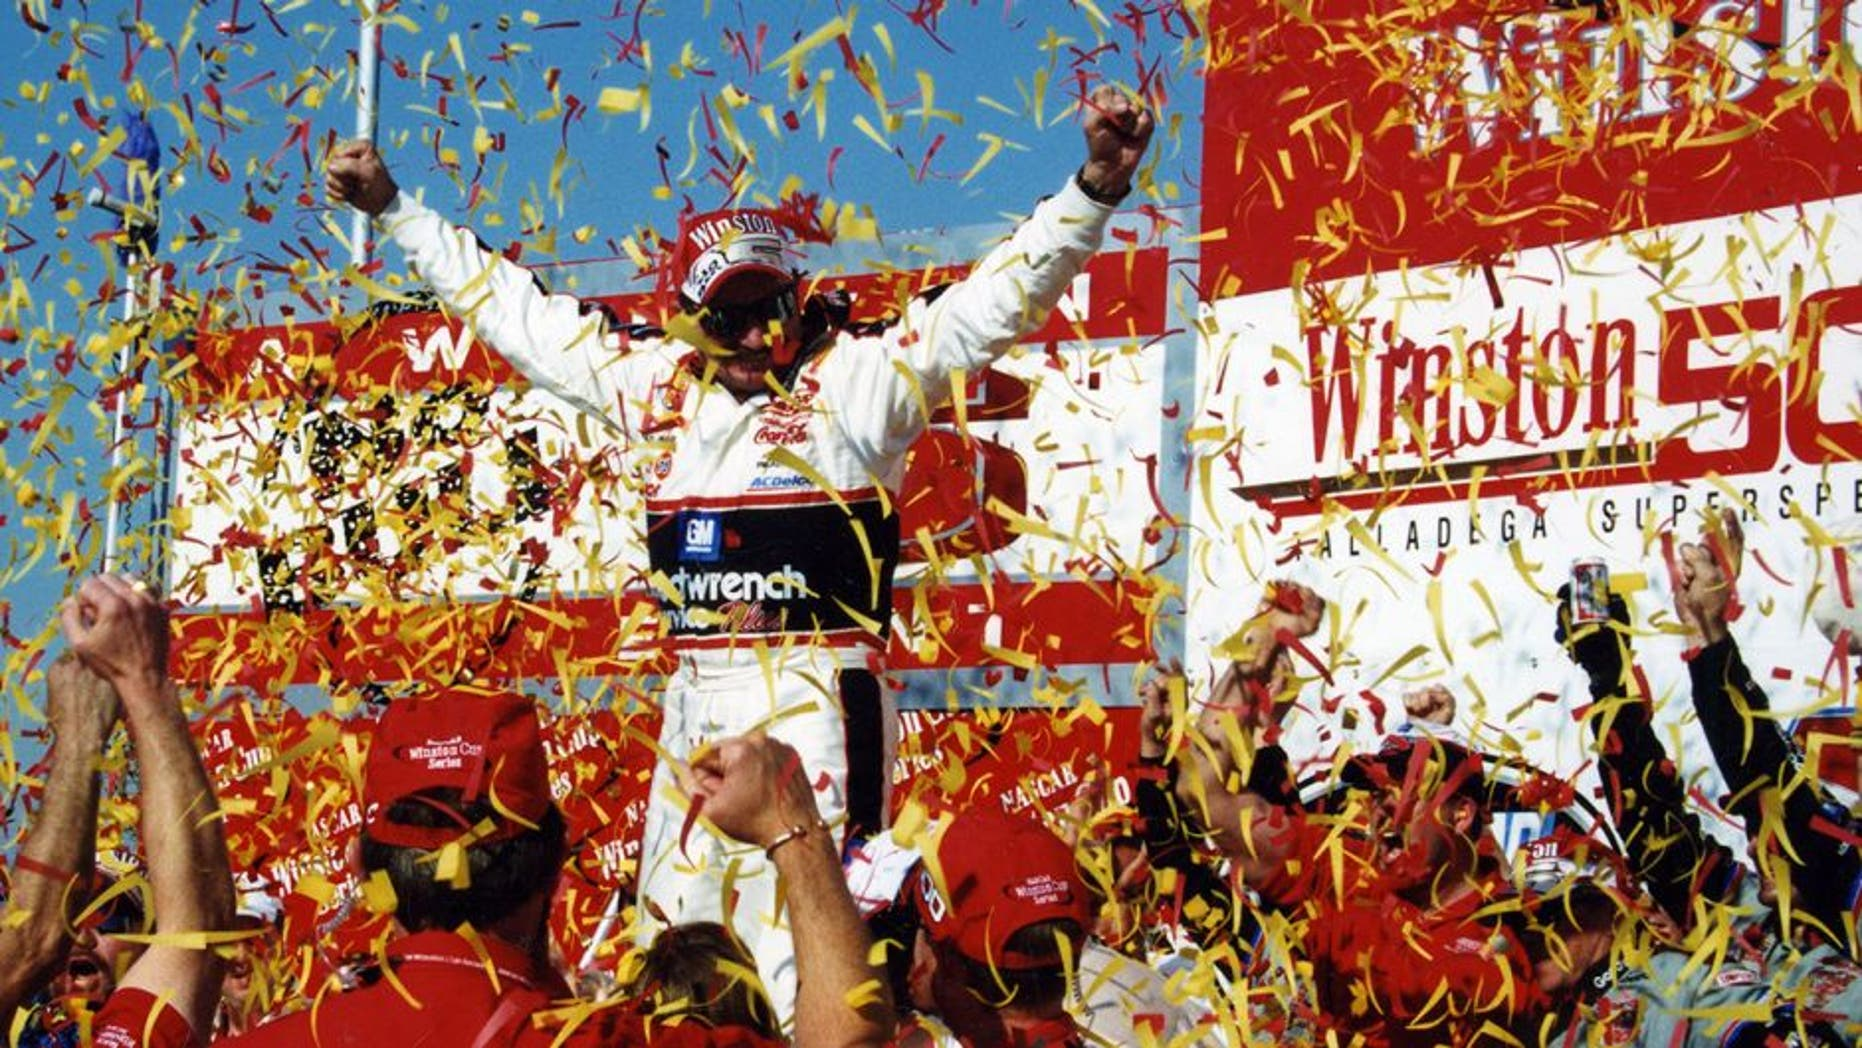 TALLADEGA, AL - OCTOBER 15, 2000: Dale Earnhardt won the seasonÕs final No Bull 5 event, his first for the special million-dollar bonus. This was his 10th career victory at Talladega. (Photo by ISC Archives via Getty Images)